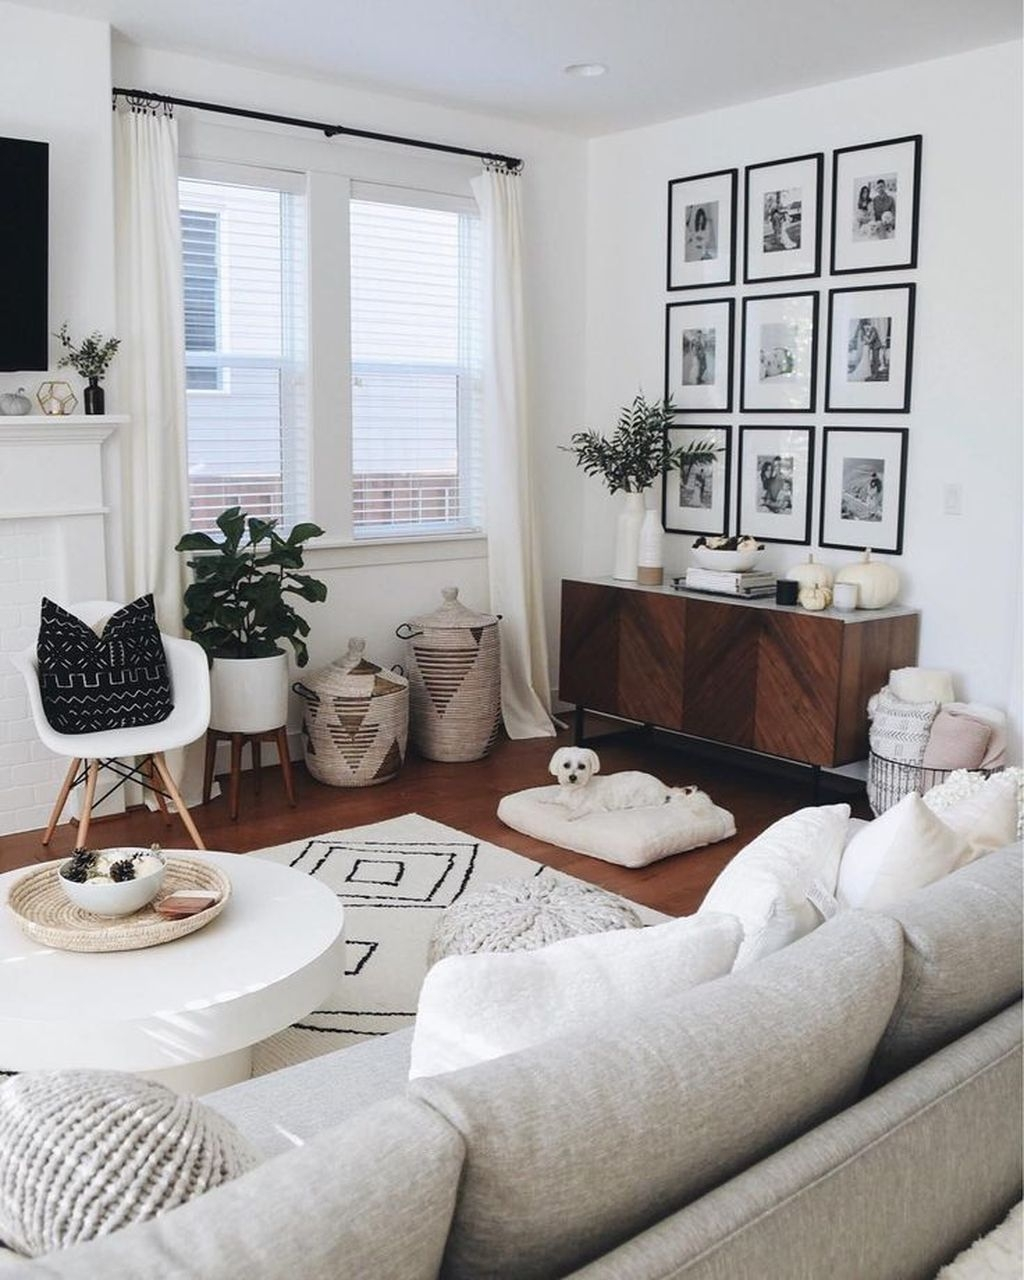 Comfy Living Room Decor Ideas To Make Anyone Feel Right At Home29